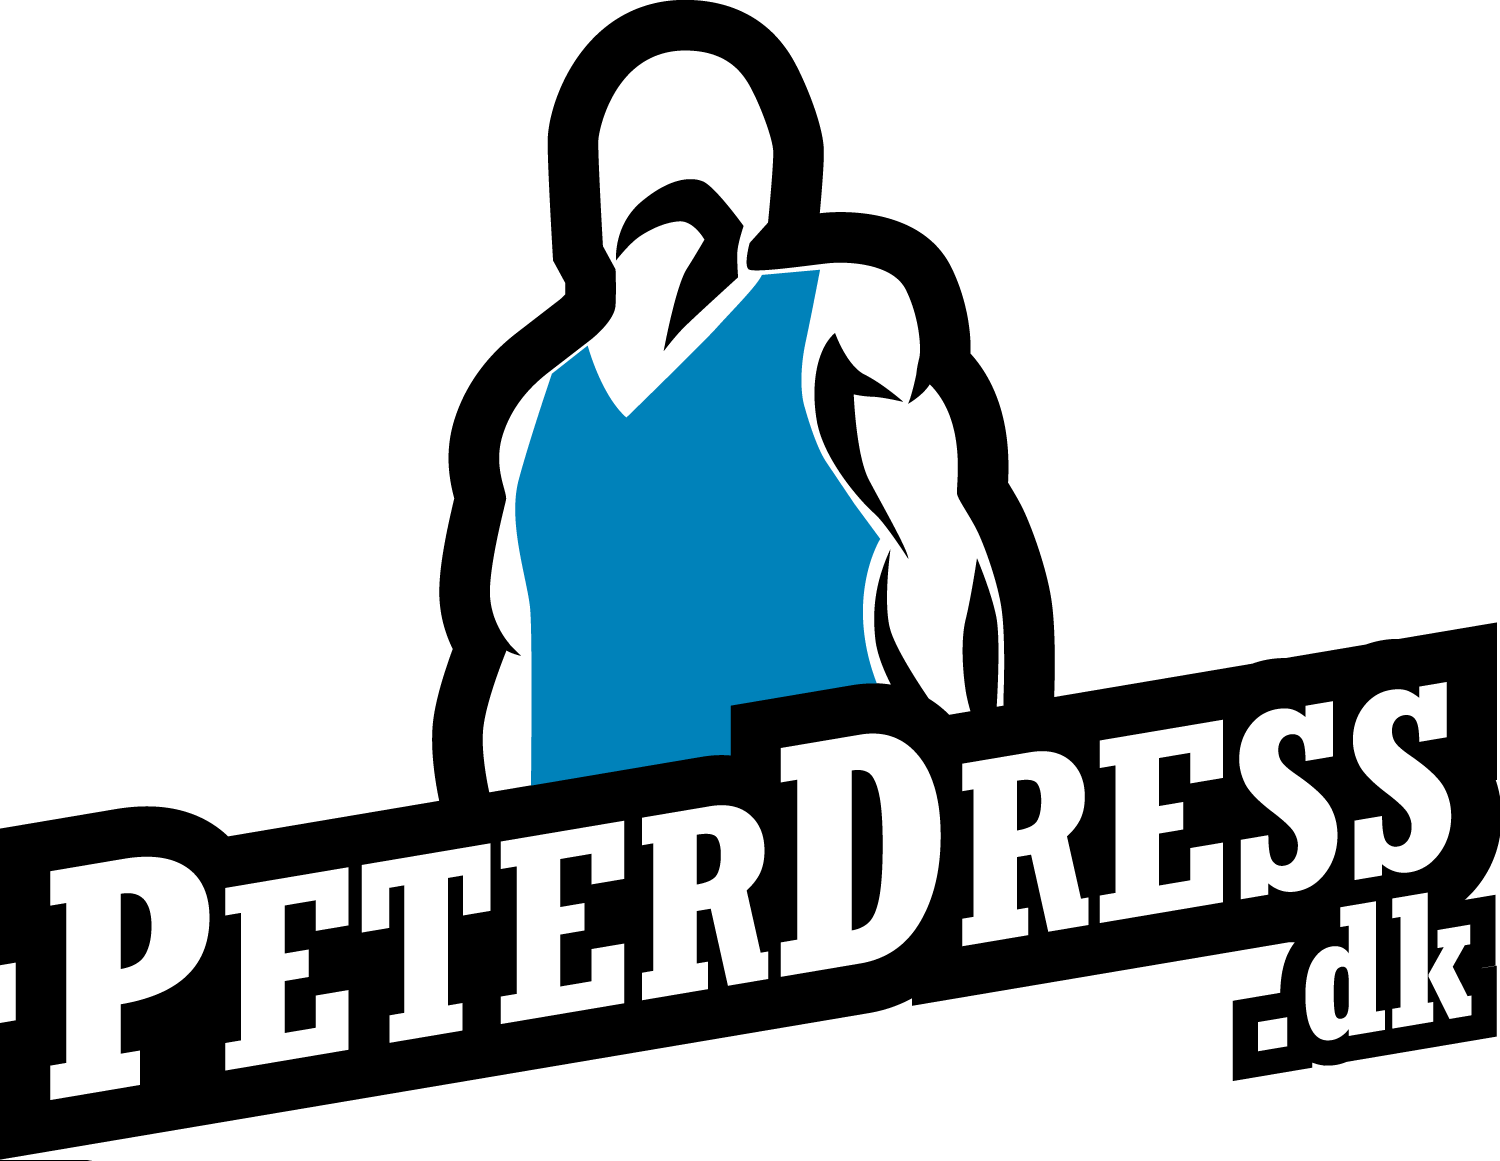 Peterdress